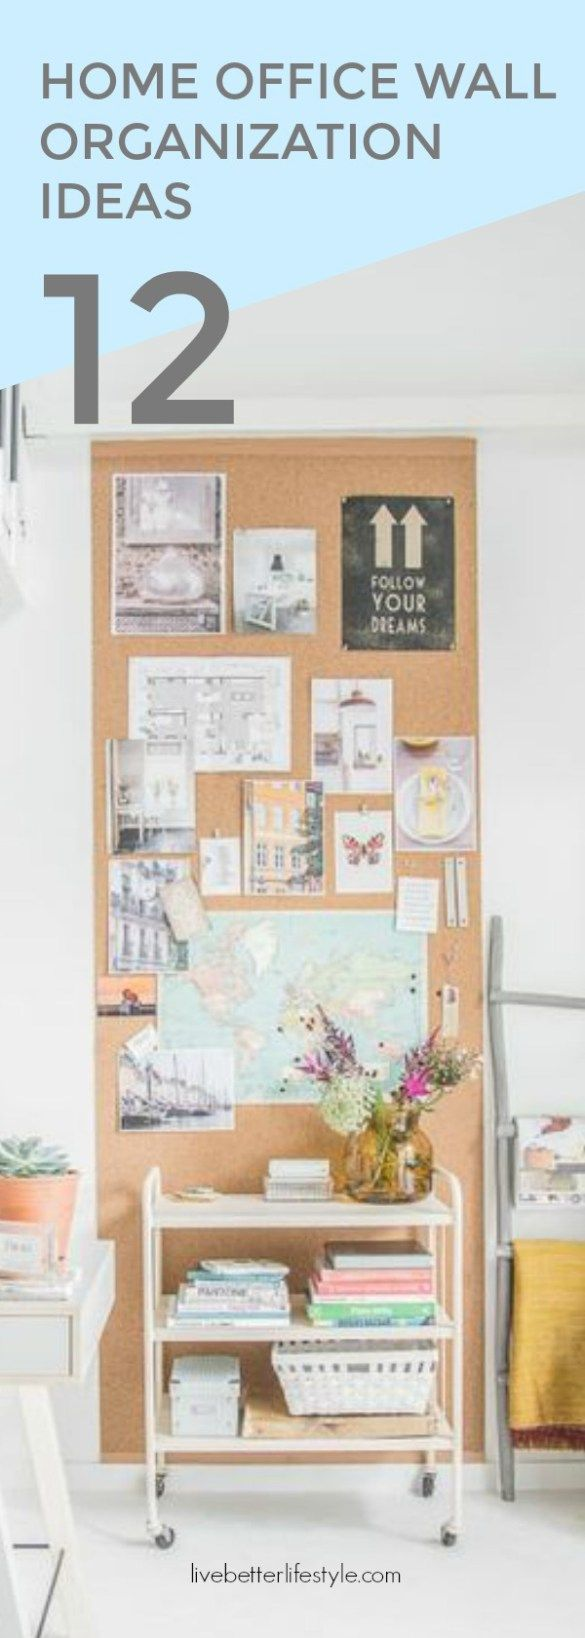 home office wall organization. 12 Brilliant Home Office Wall Organization Ideas |